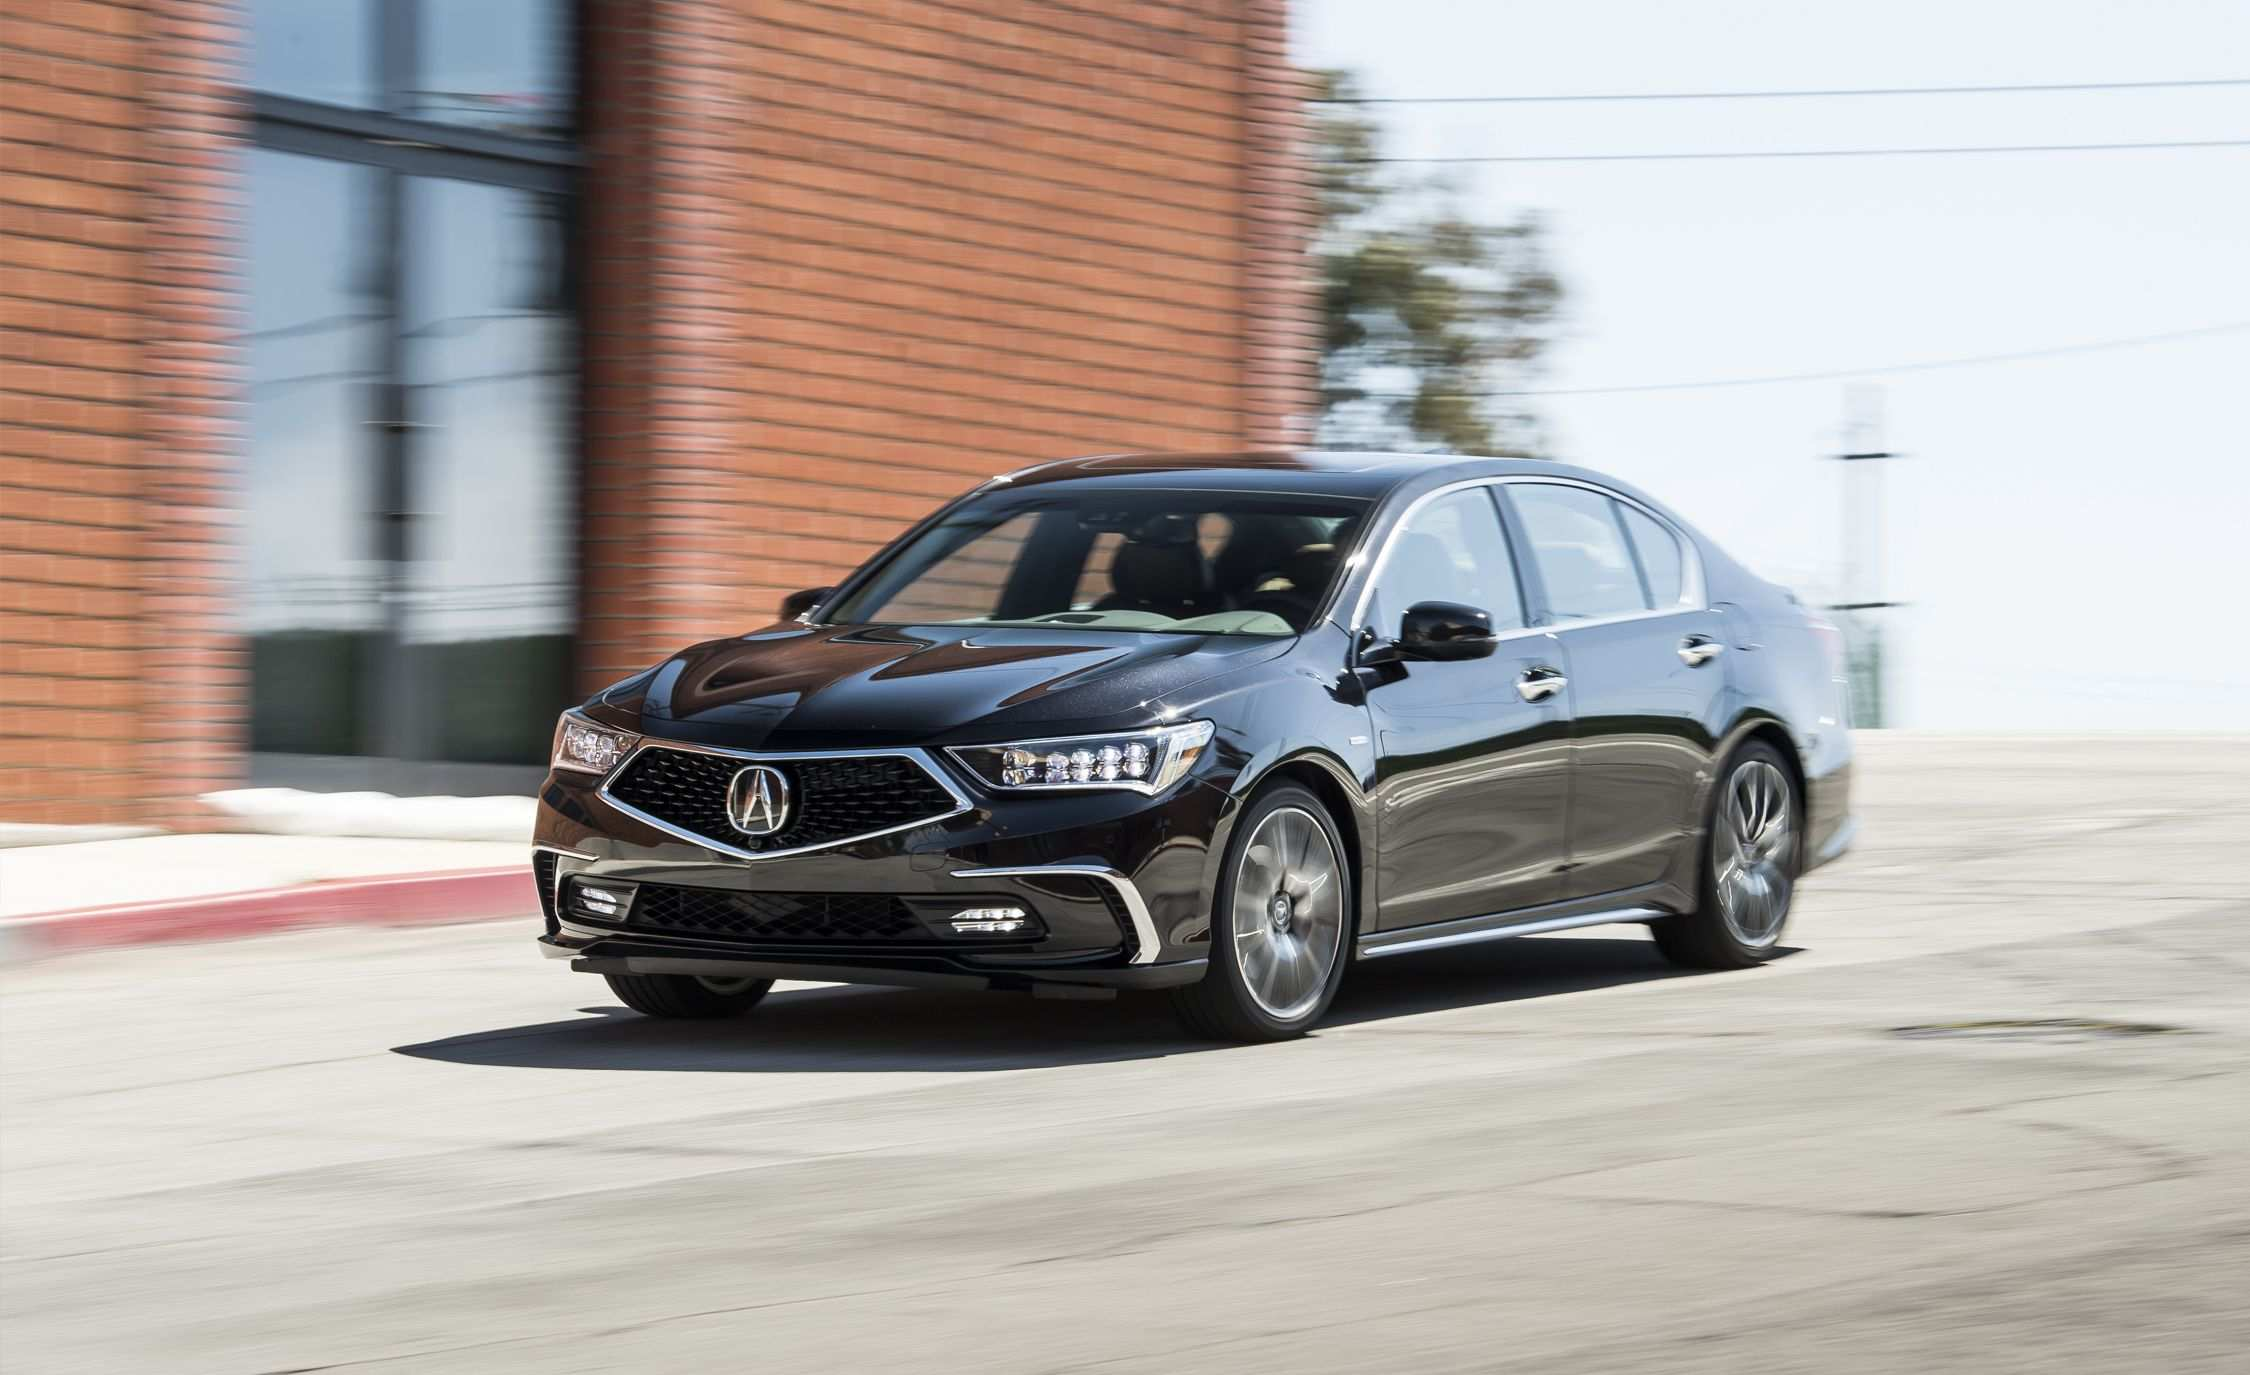 83 The New 2019 Acura Rlx Sport Hybrid Redesign Price And Review Interior for New 2019 Acura Rlx Sport Hybrid Redesign Price And Review